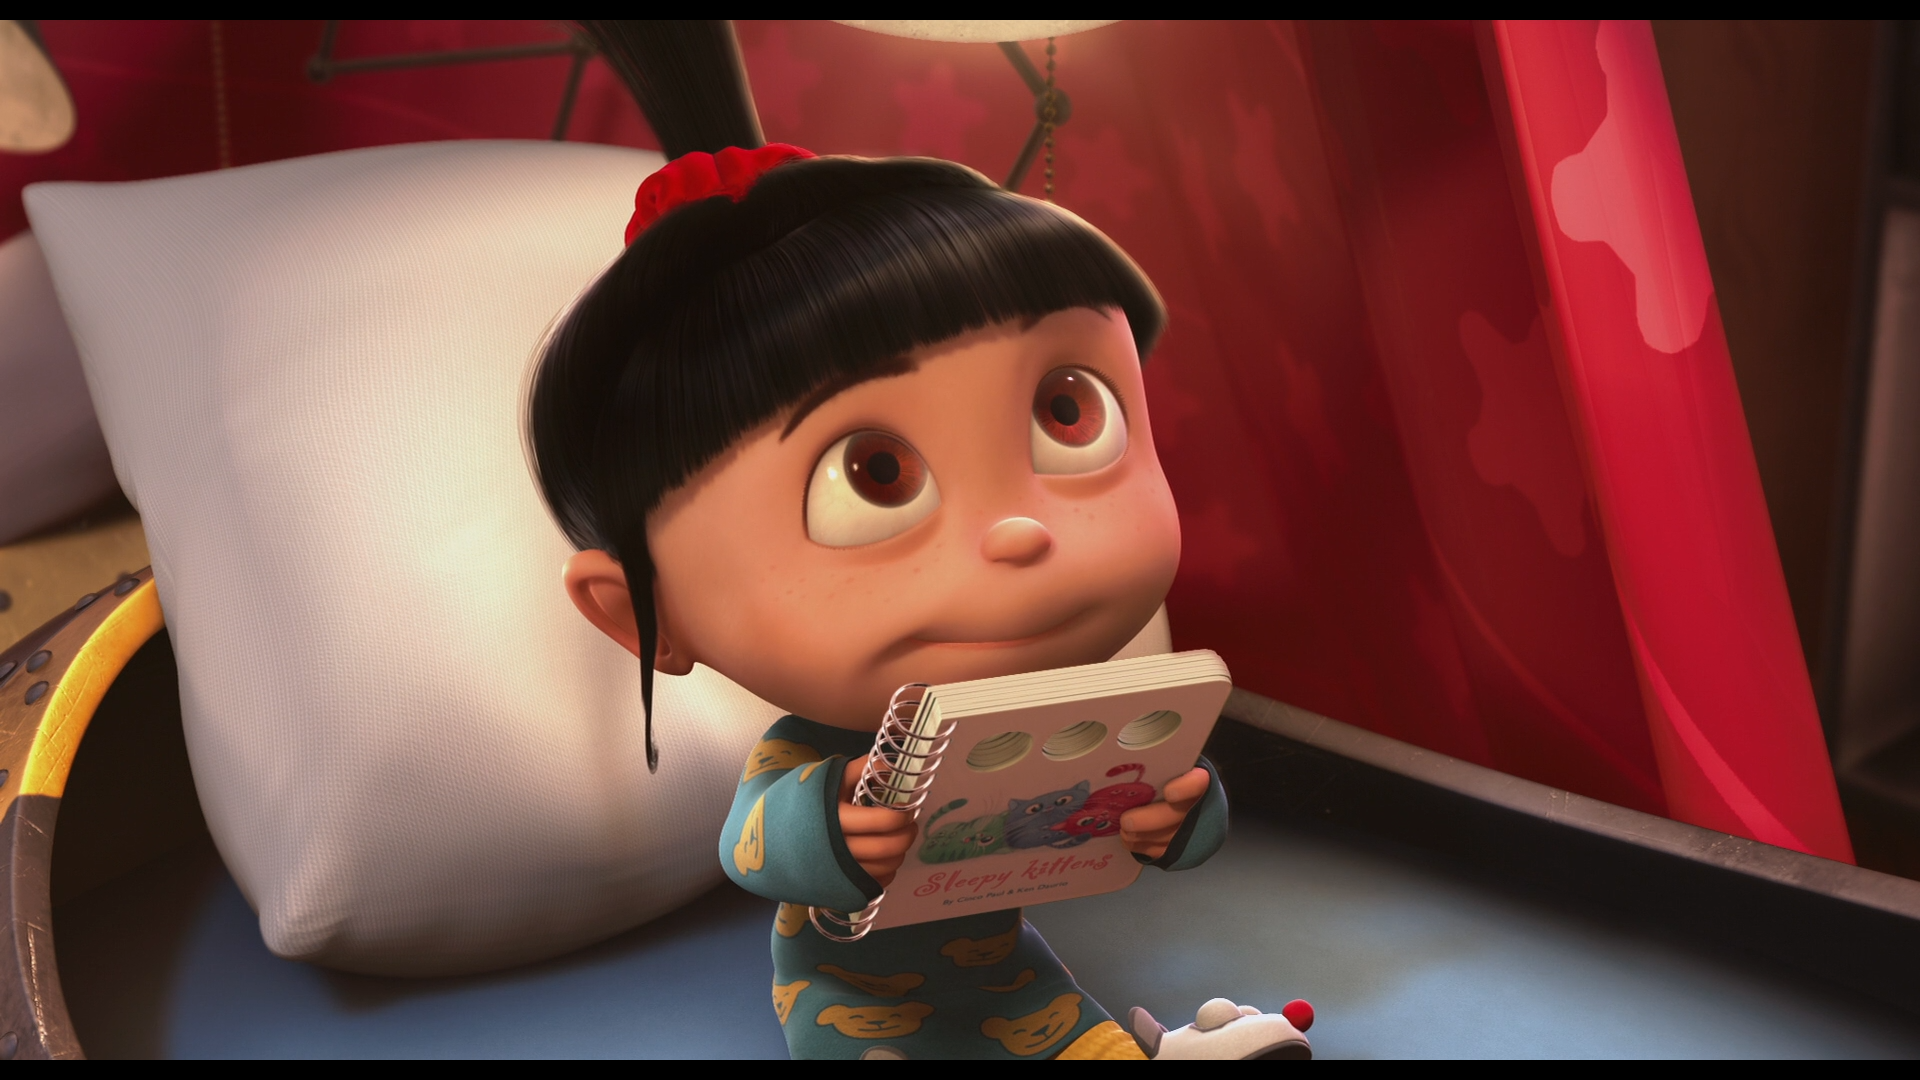 despicable me agnes wallpapers 6 wallpapers